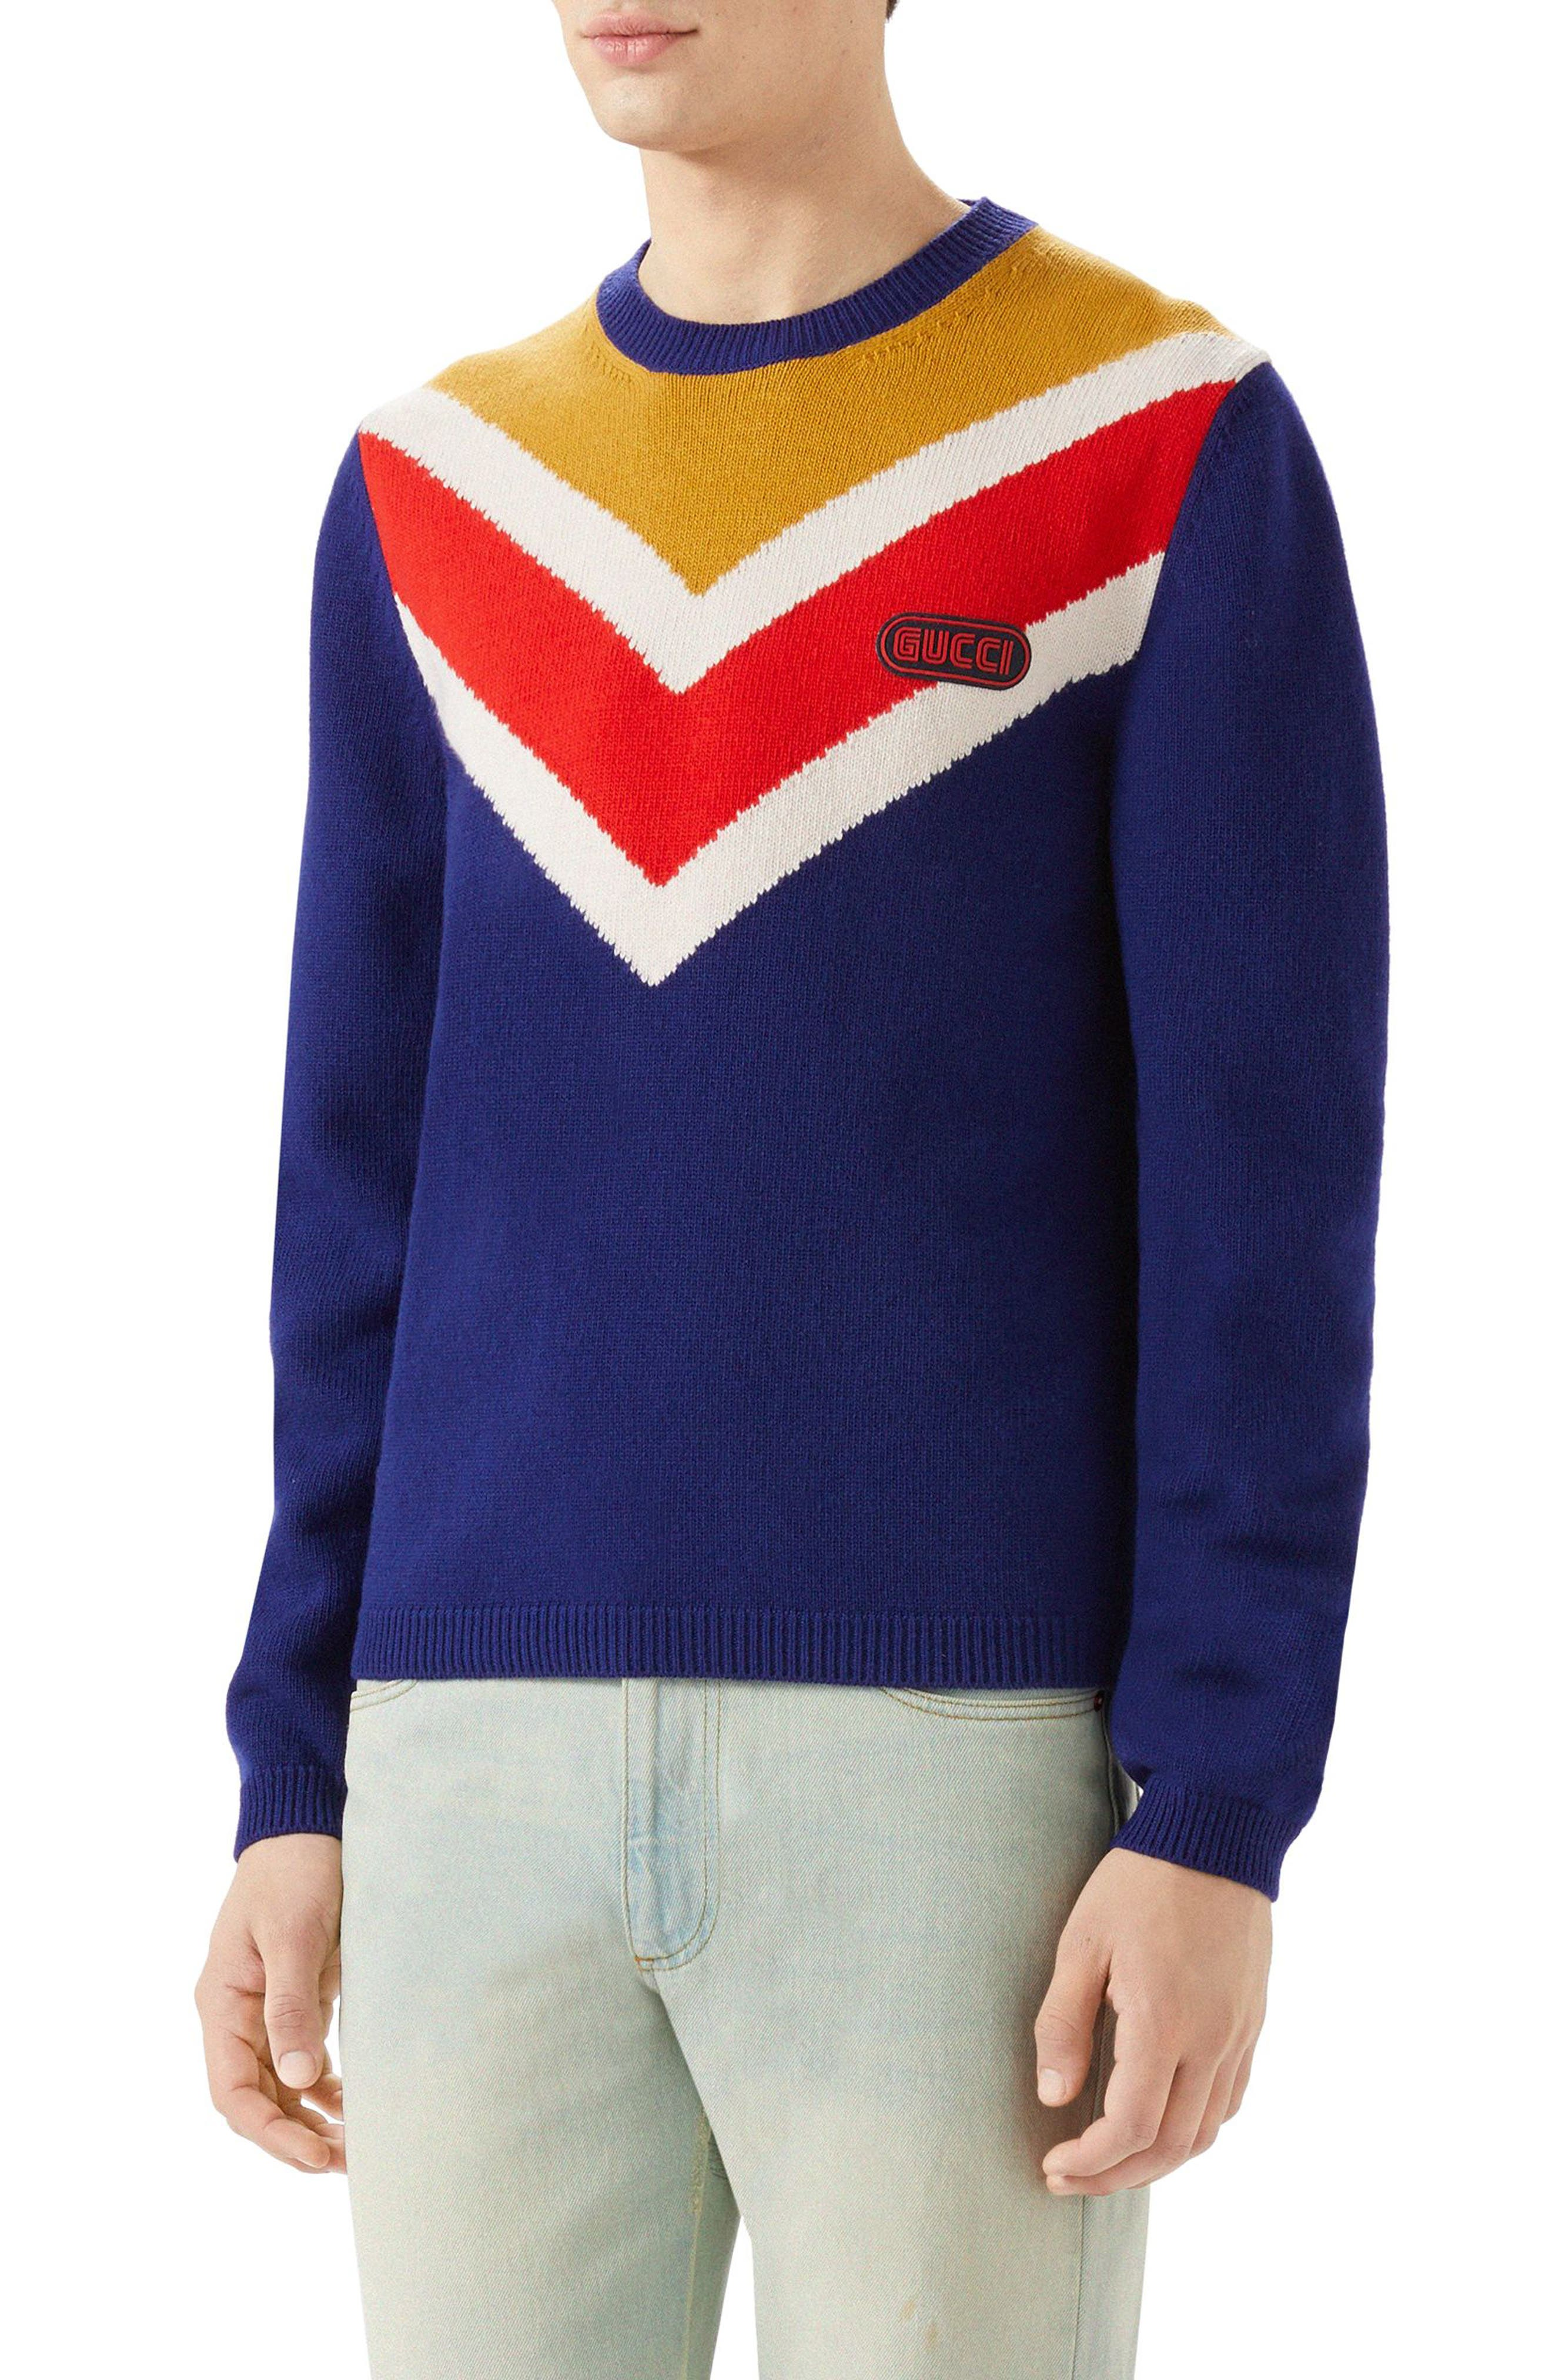 GUCCI Intarsia V-Stripe Wool Sweater, Main, color, 400